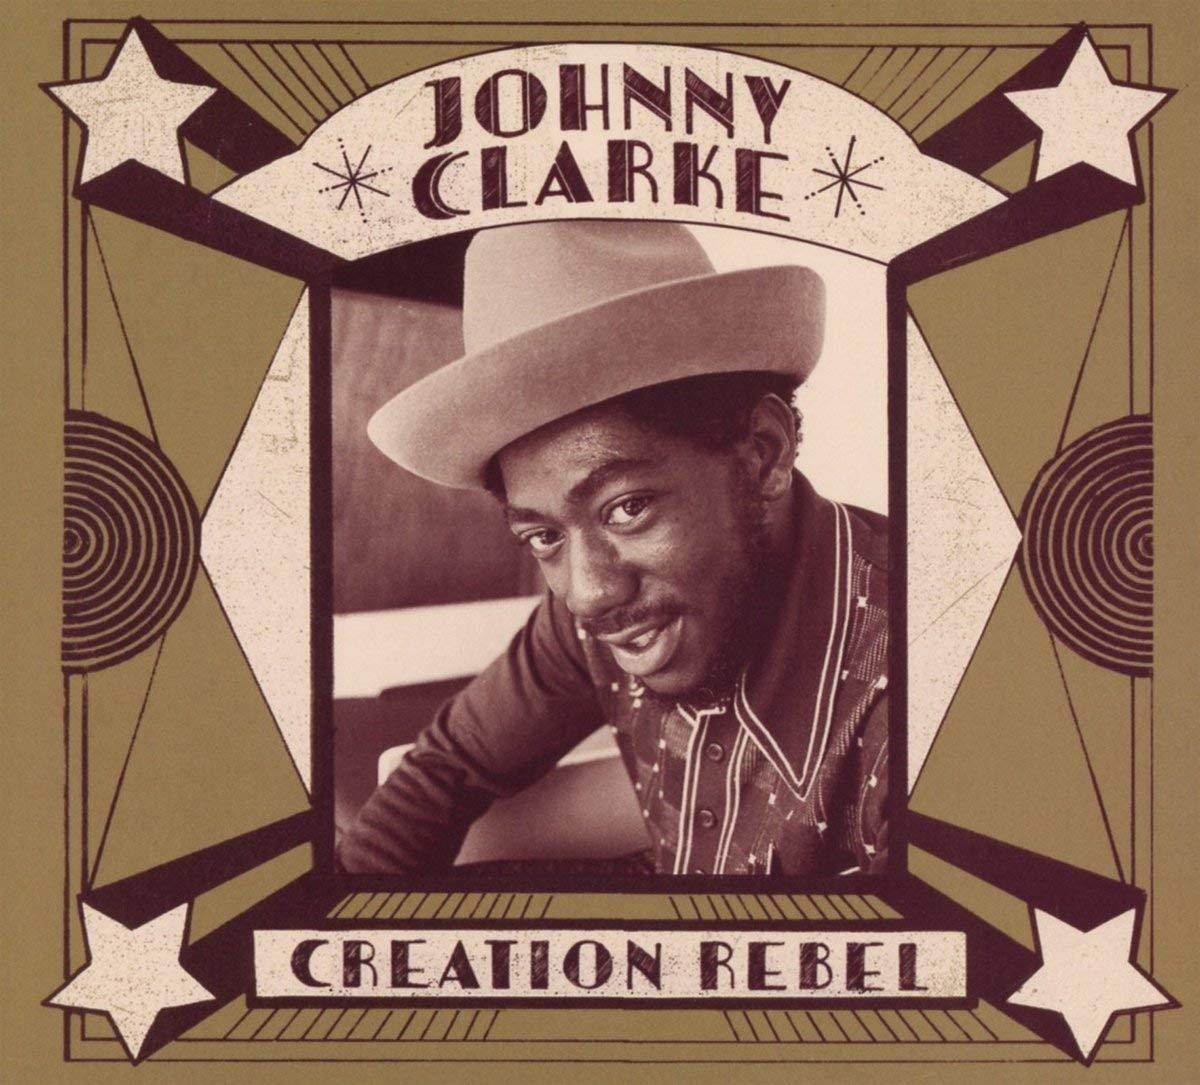 world reg 08 18 reggae J Clarke